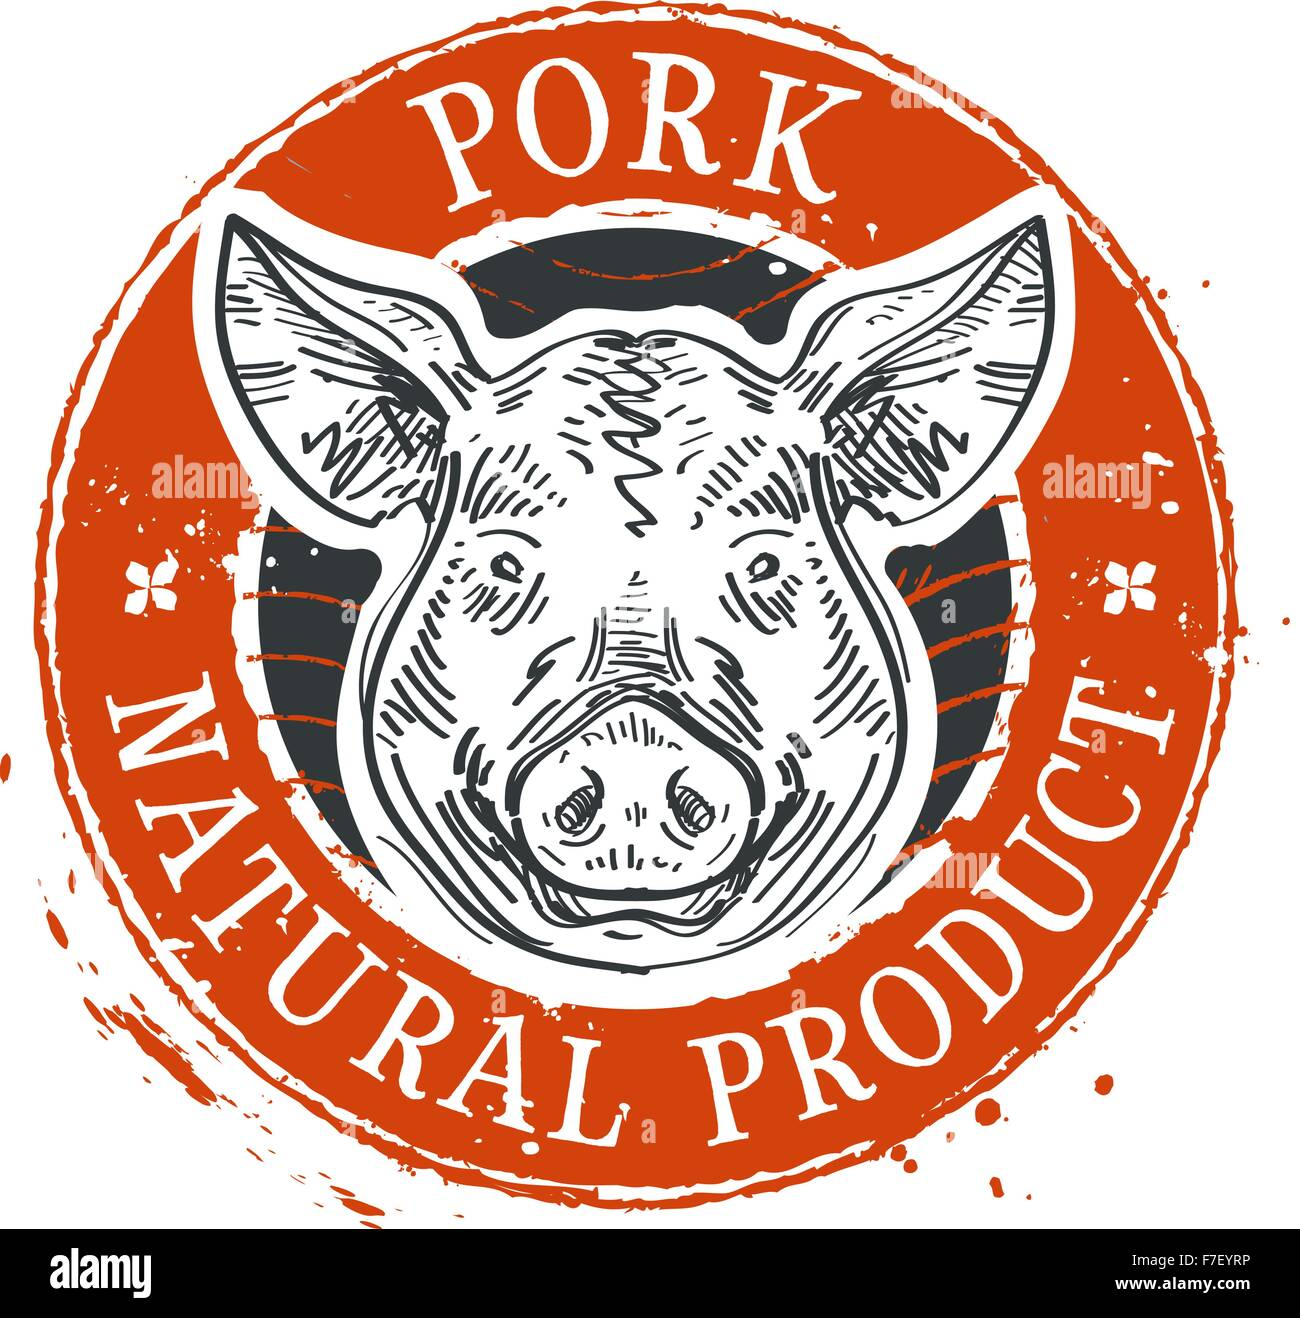 pig, swine vector logo design template. pork or farm icon - Stock Vector